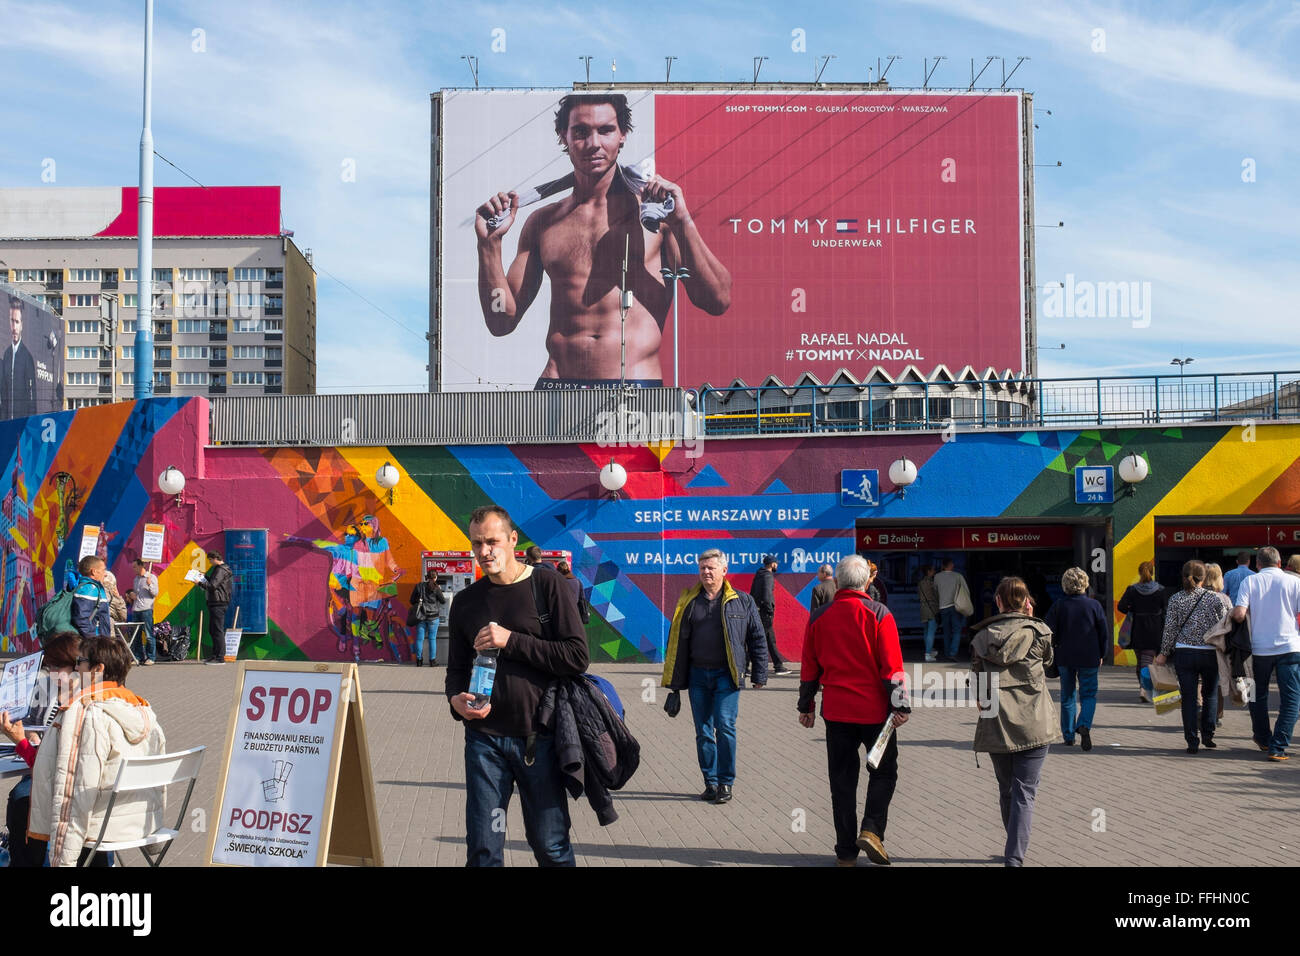 Rafael Nadal on Tommy Hilfiger billboard in central Warsaw, Poland - Stock Image